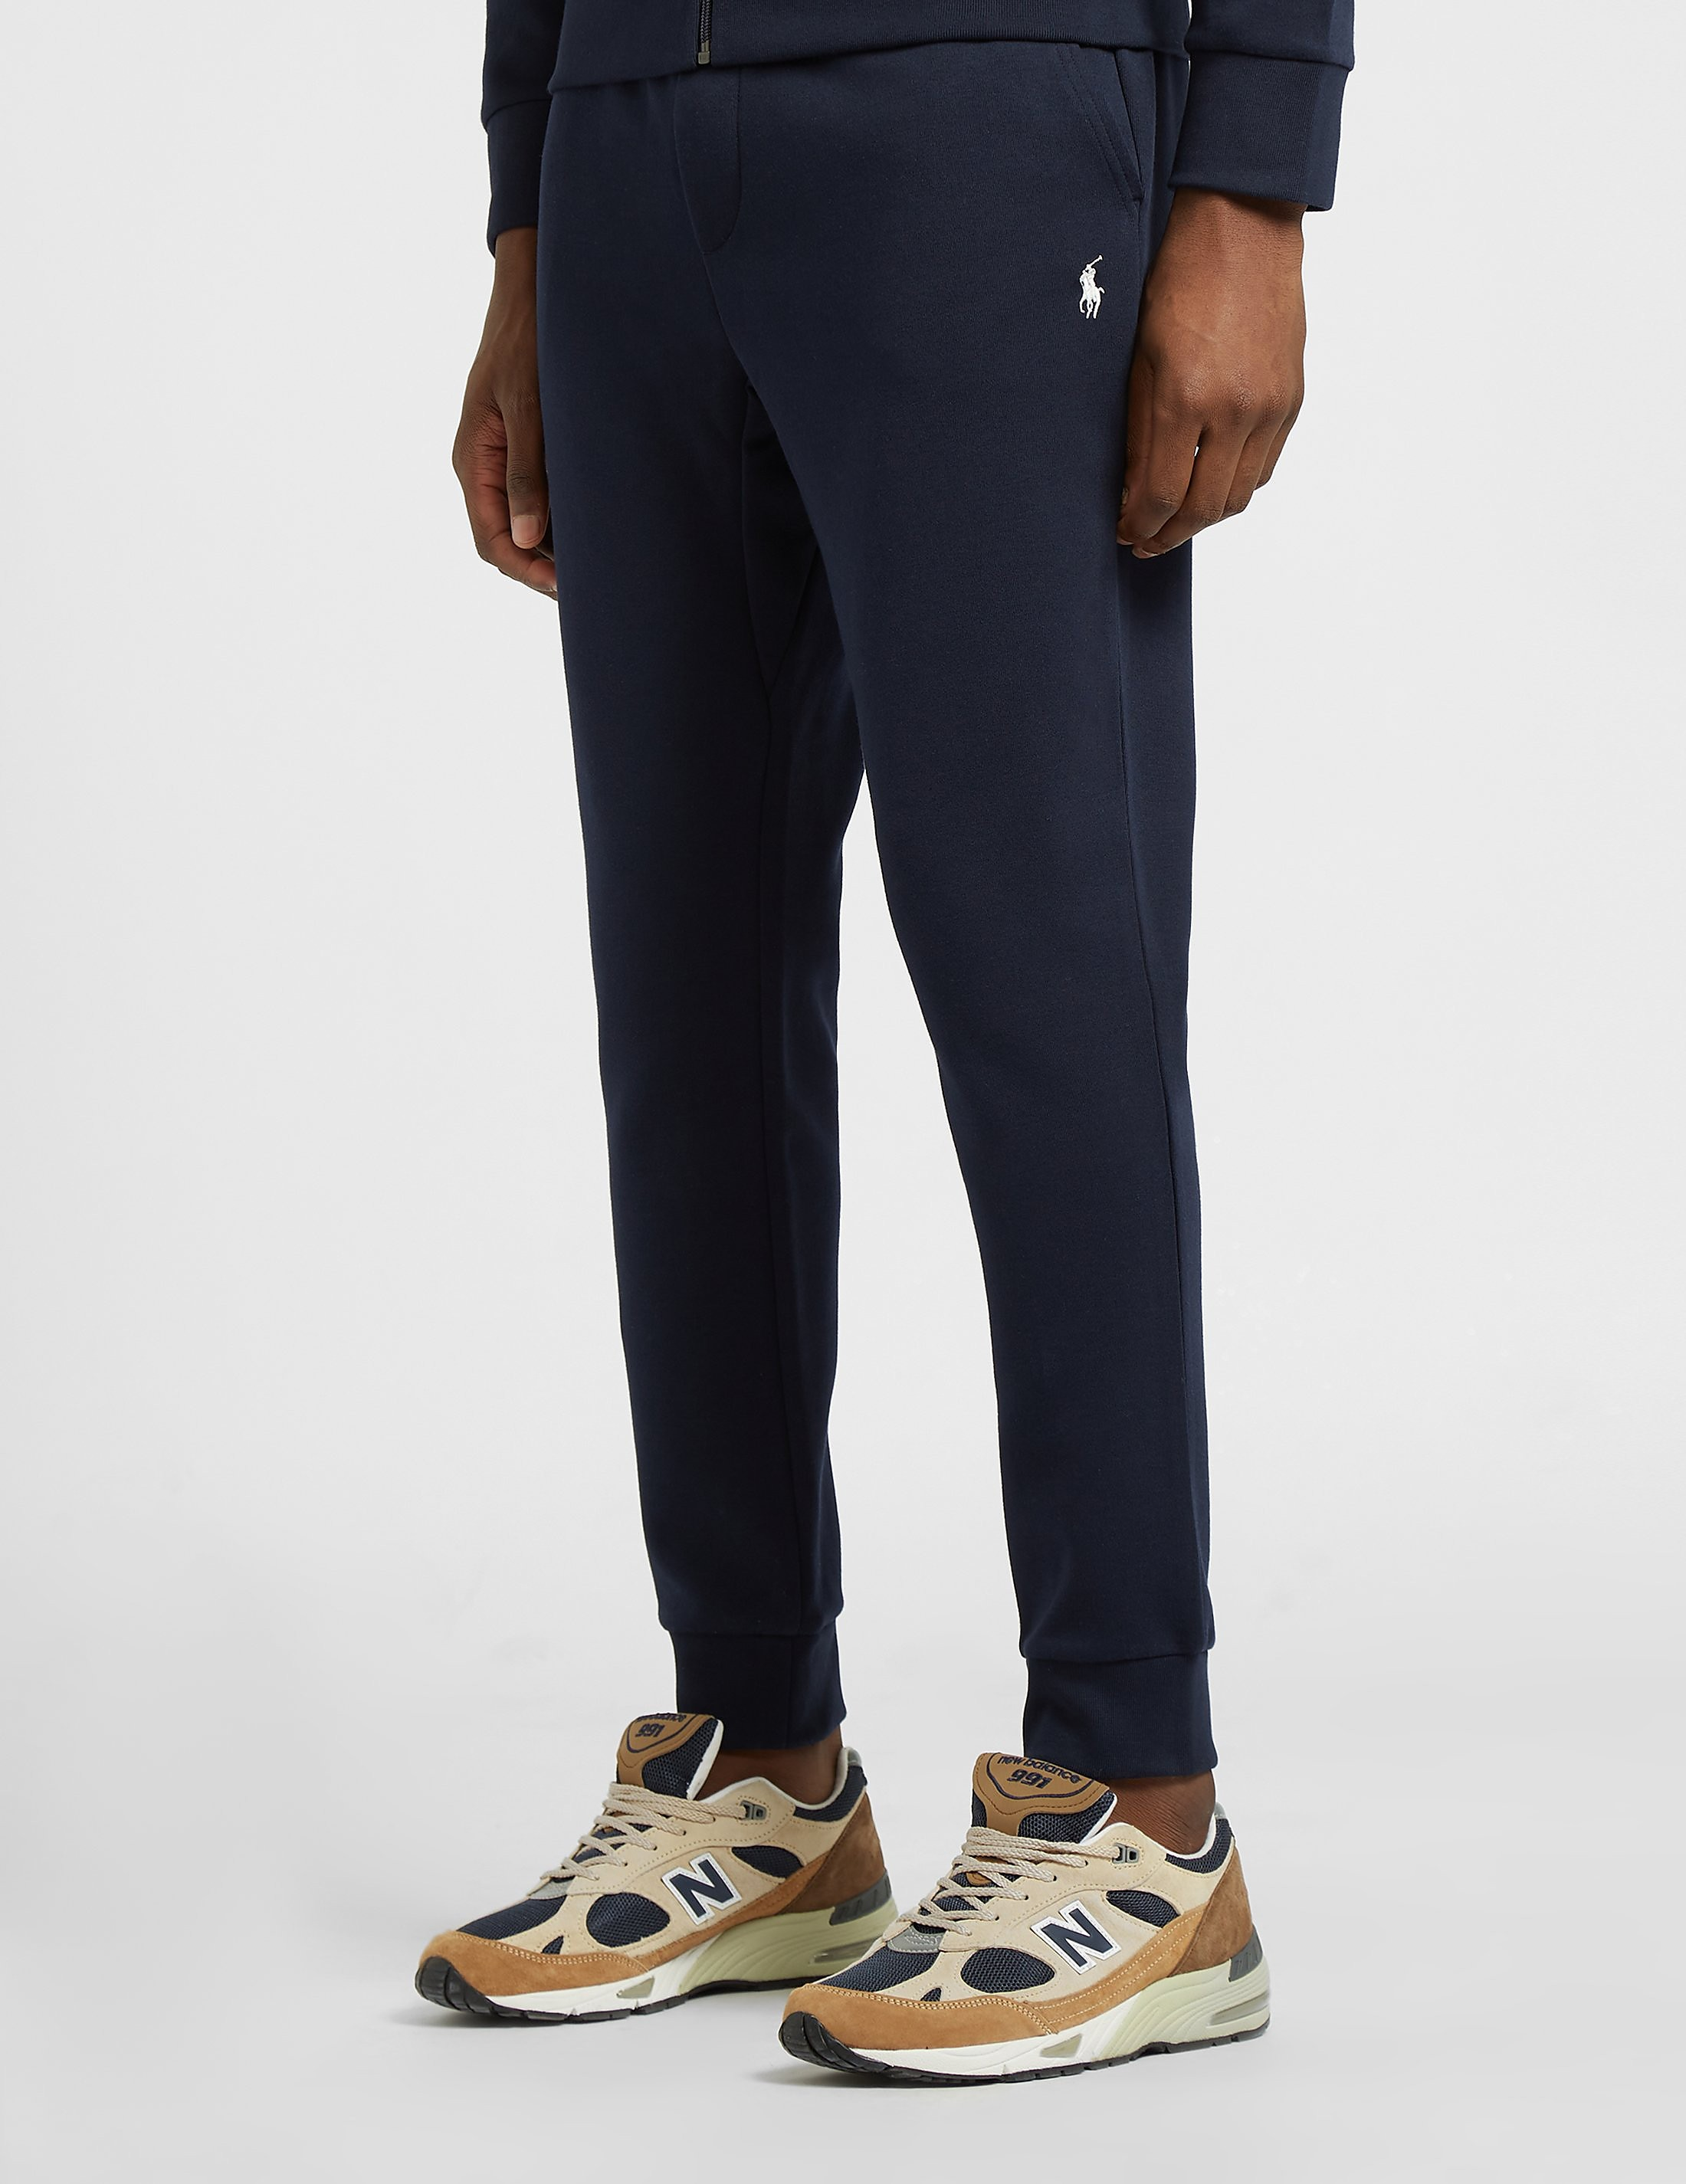 Polo Ralph Lauren Fleece Cuffed Track Pants